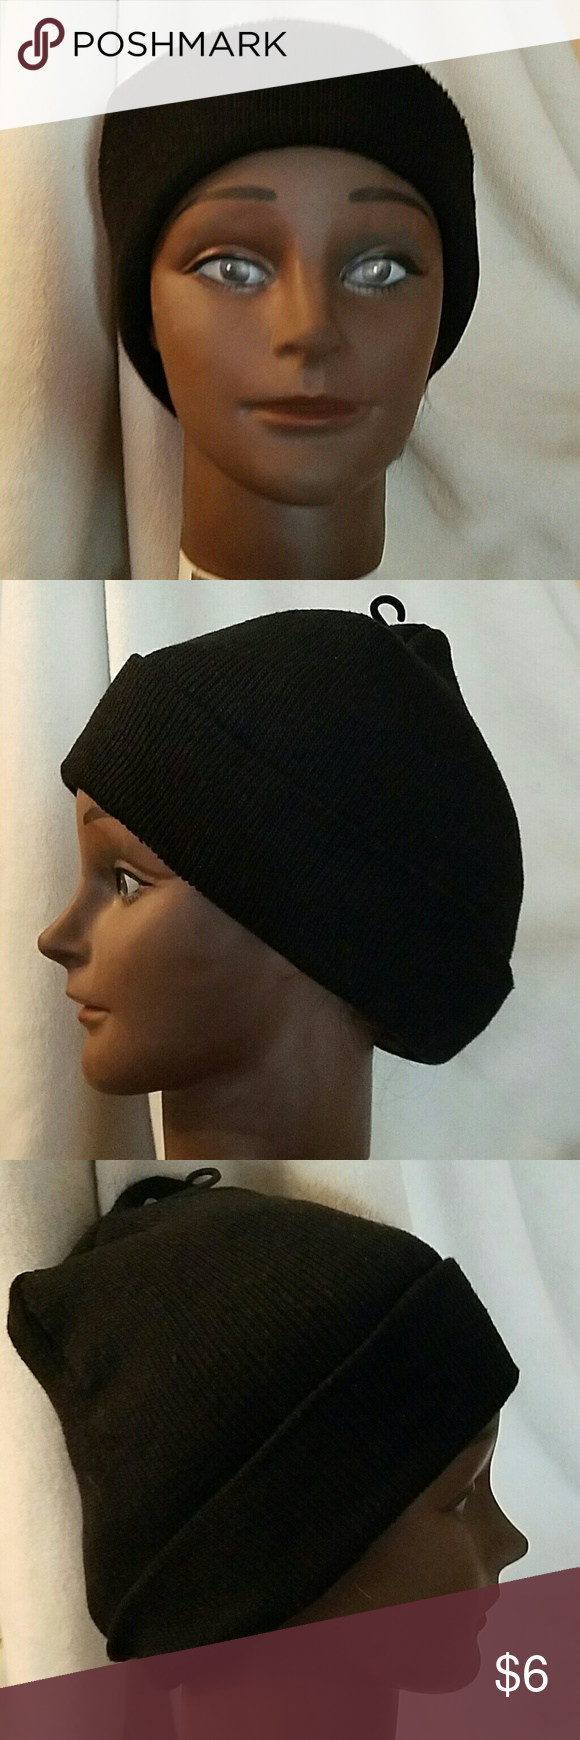 NWOT Black Beanie Hat Black beanie, Knitting designs